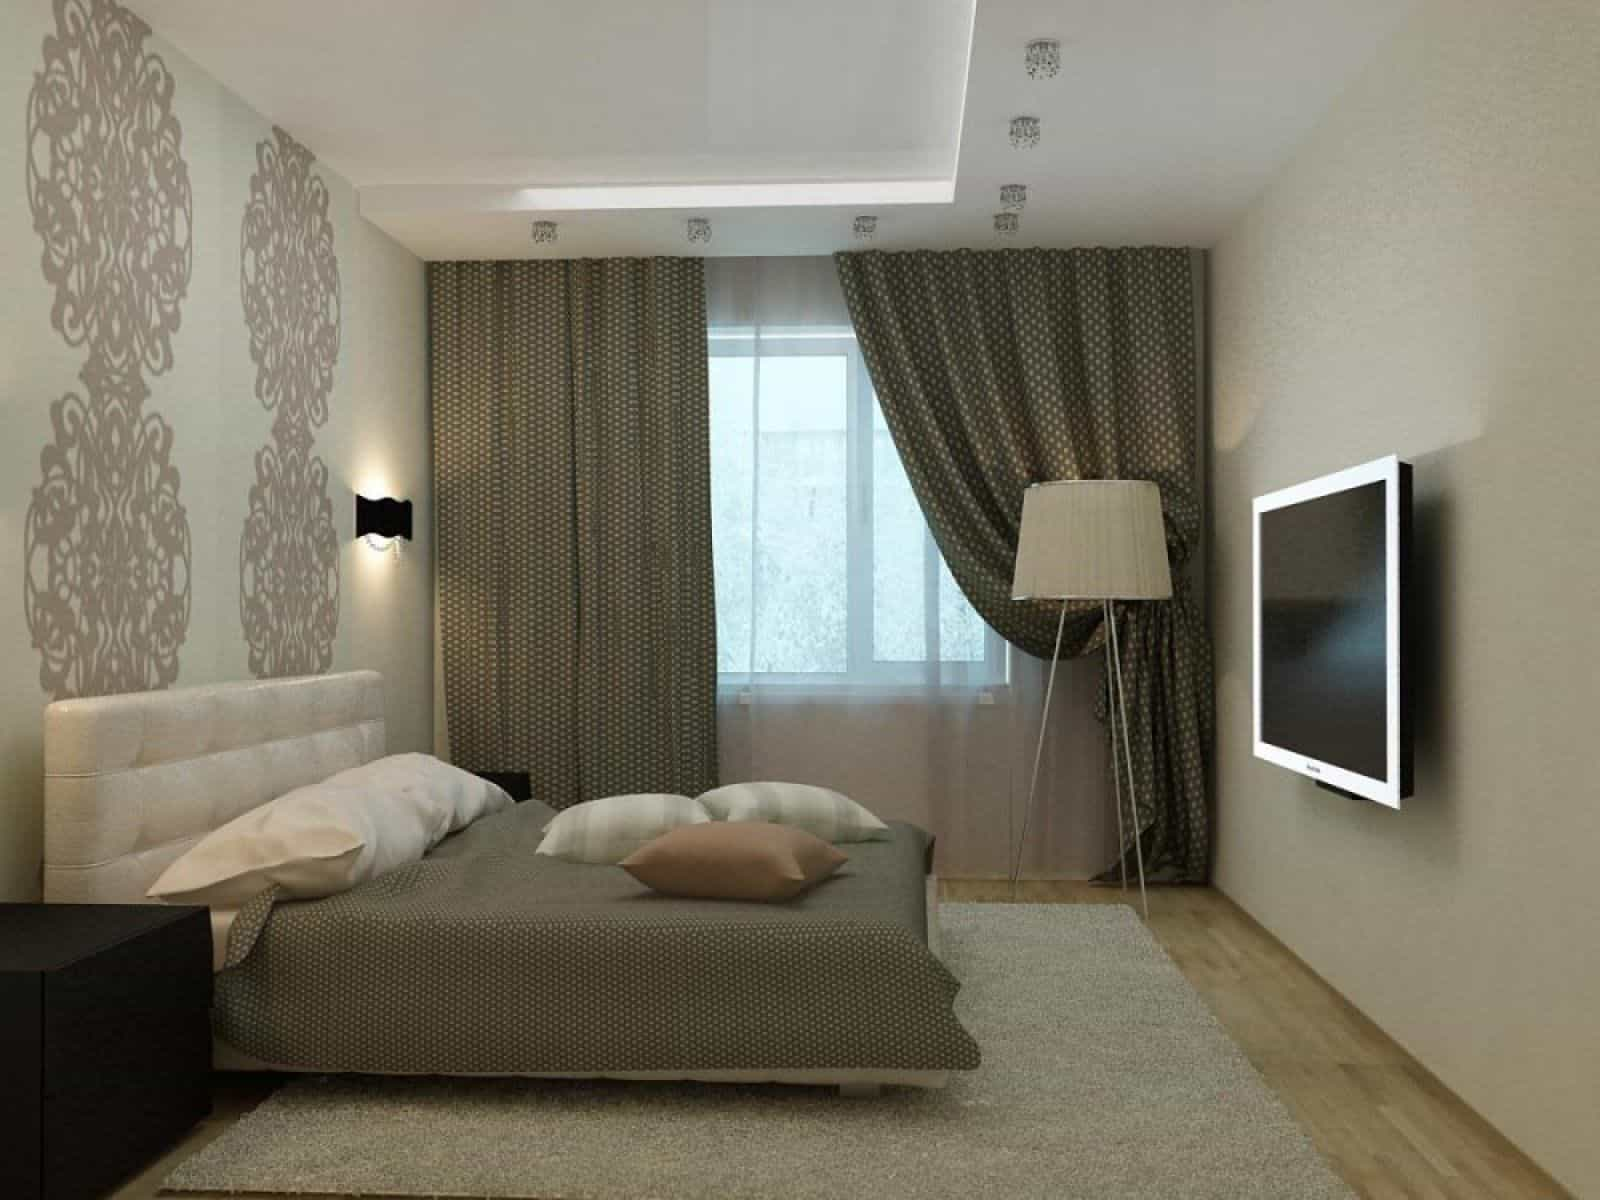 Spotlights on the ceiling and sconces on the wall in the bedroom